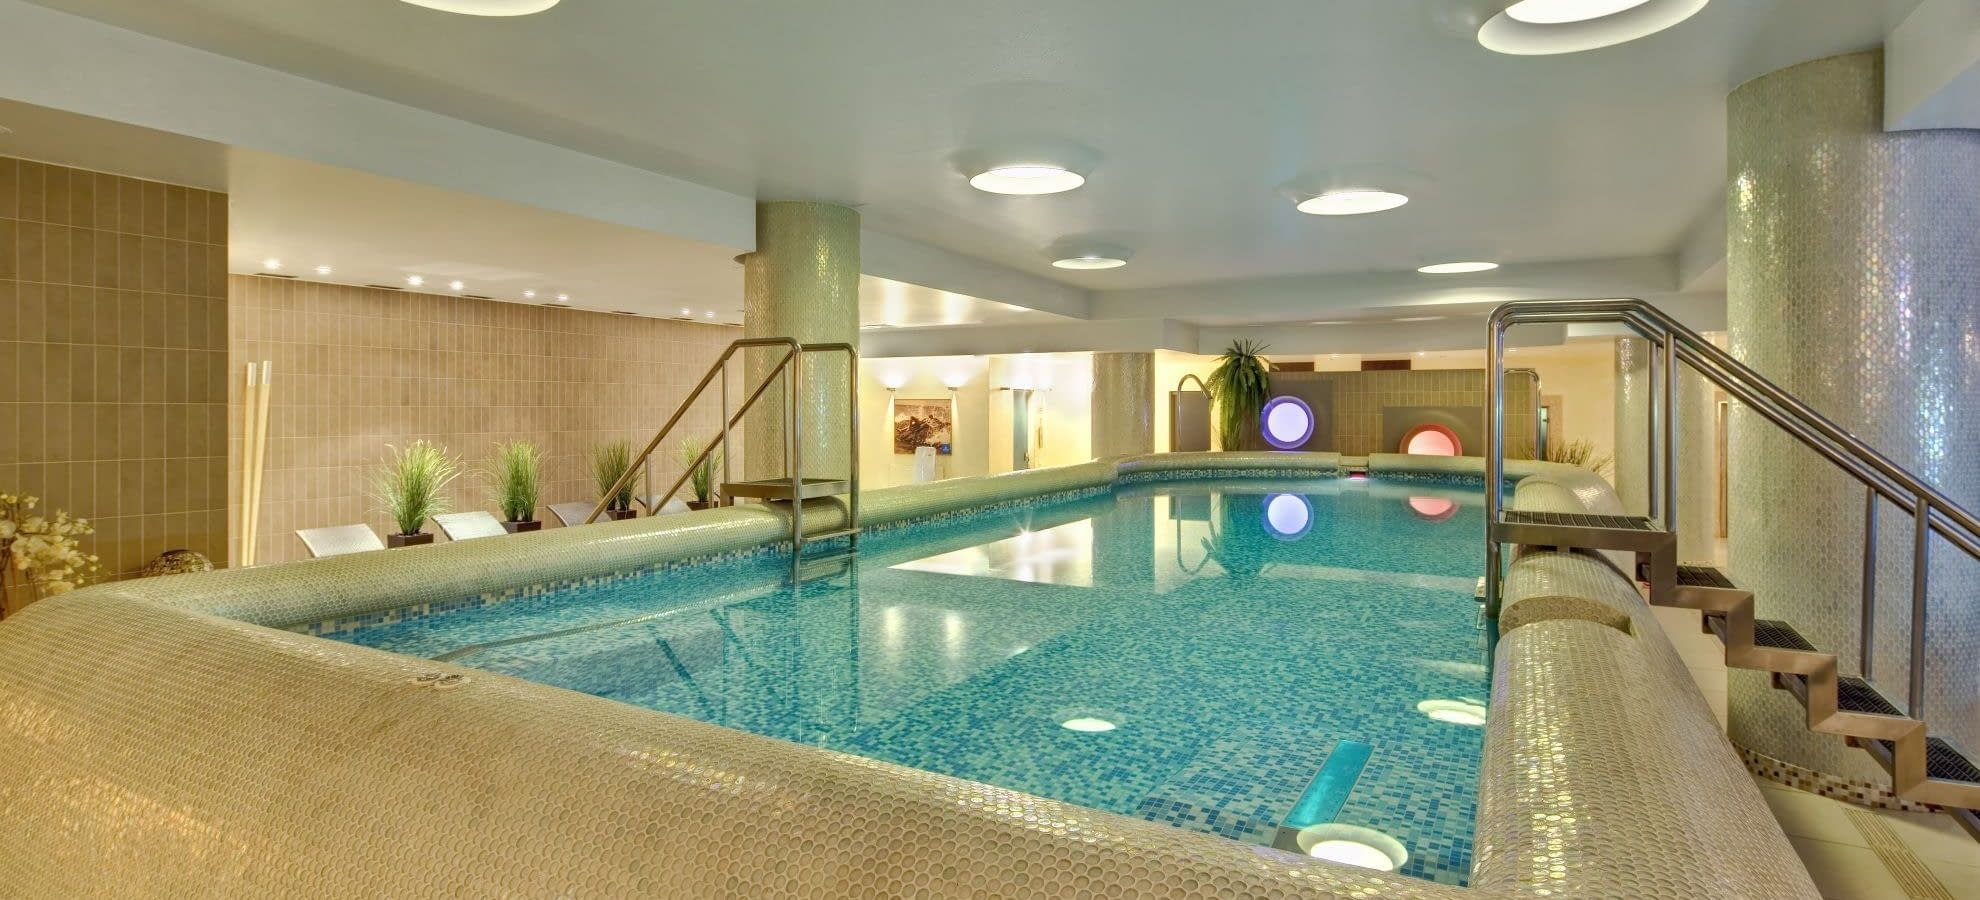 Wellness mamaison all suites spa hotel pokrovka for Wellness hotel